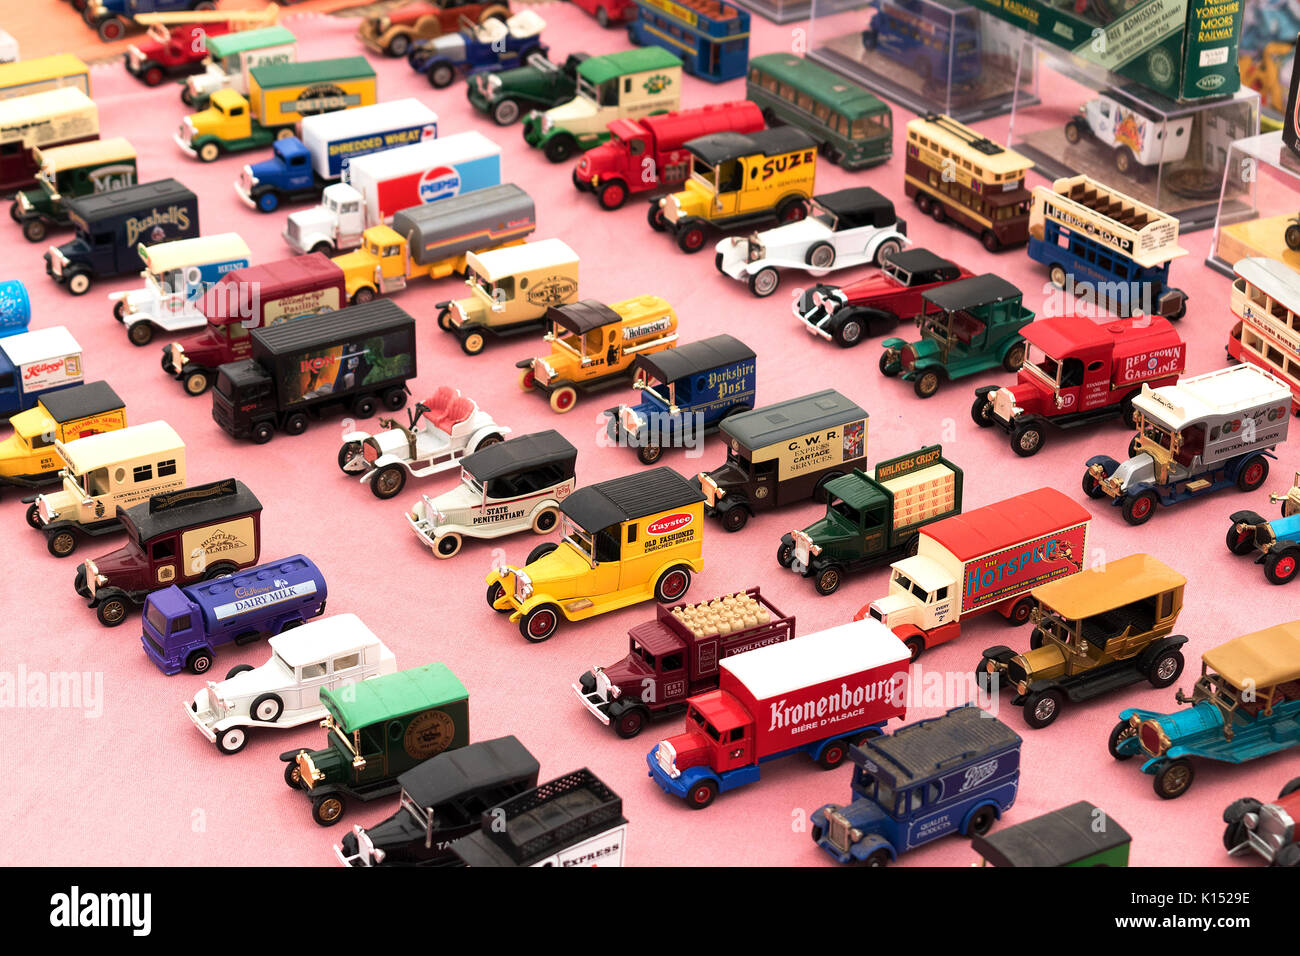 a model toy car collection - Stock Image